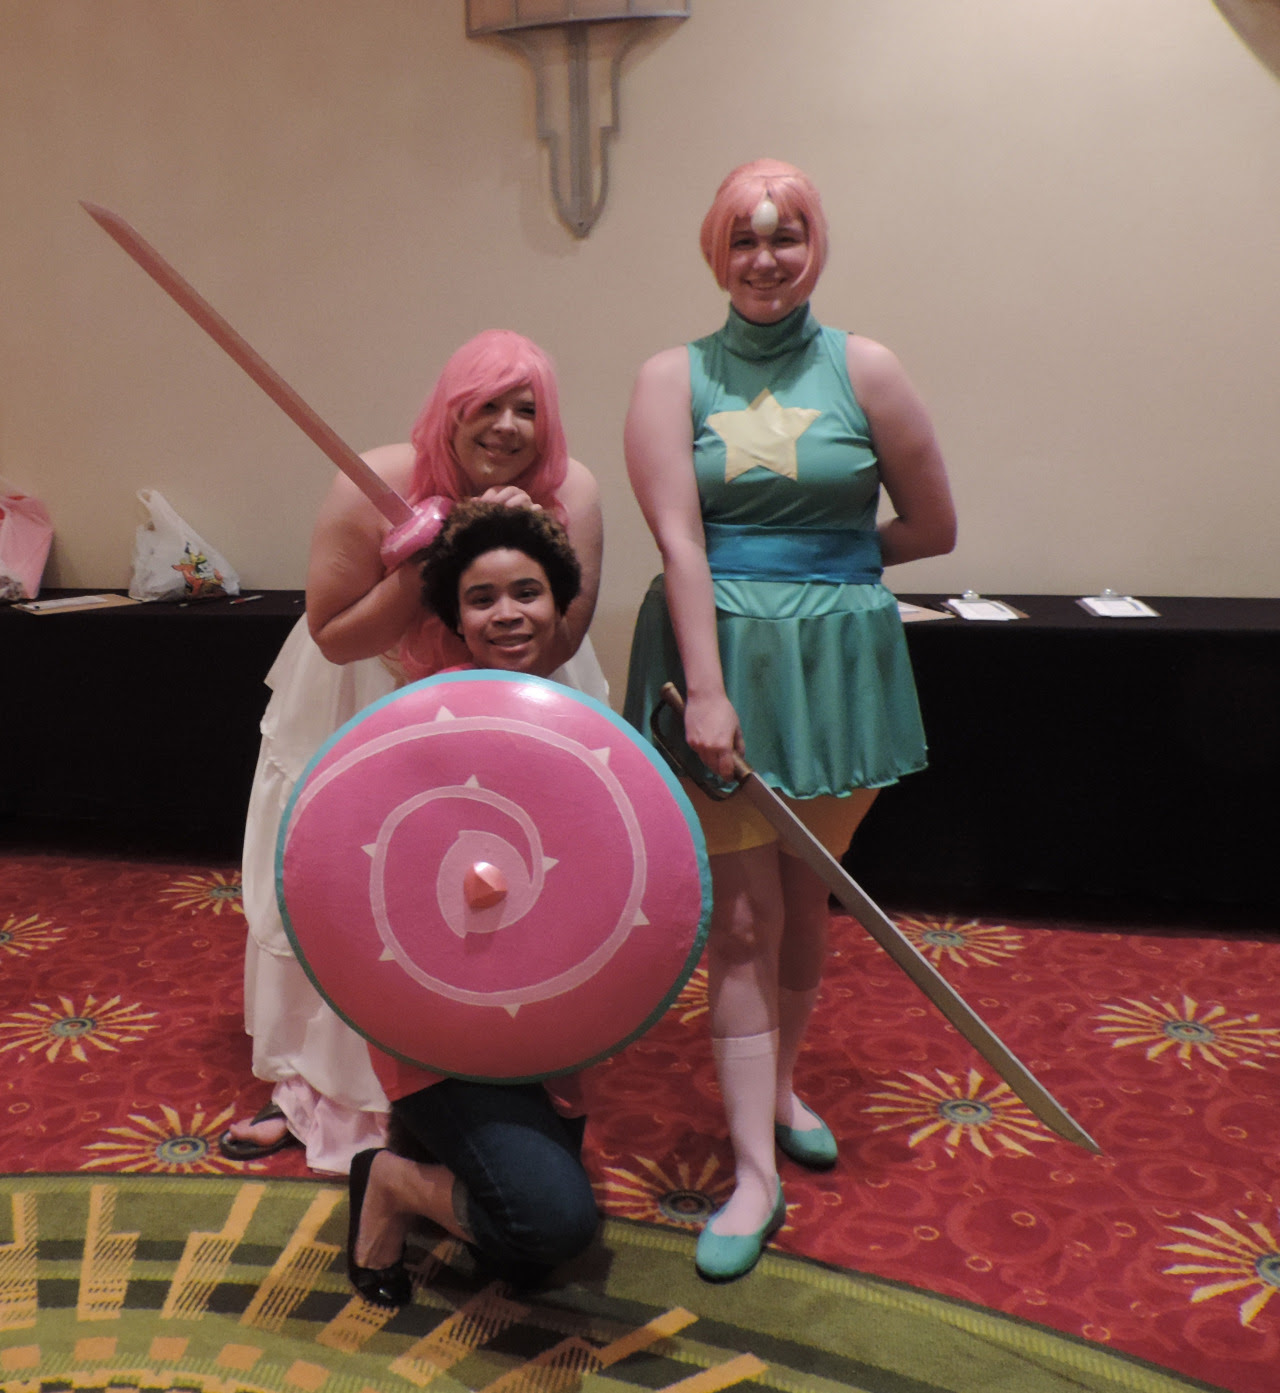 So Po and I went as Rose Quartz and Pearl to Anime Mid-Atlantic, after a hysterical Thursday evening of trying to finish that dress. X'''D But we turned out pretty damn awesome if I do say so myself....